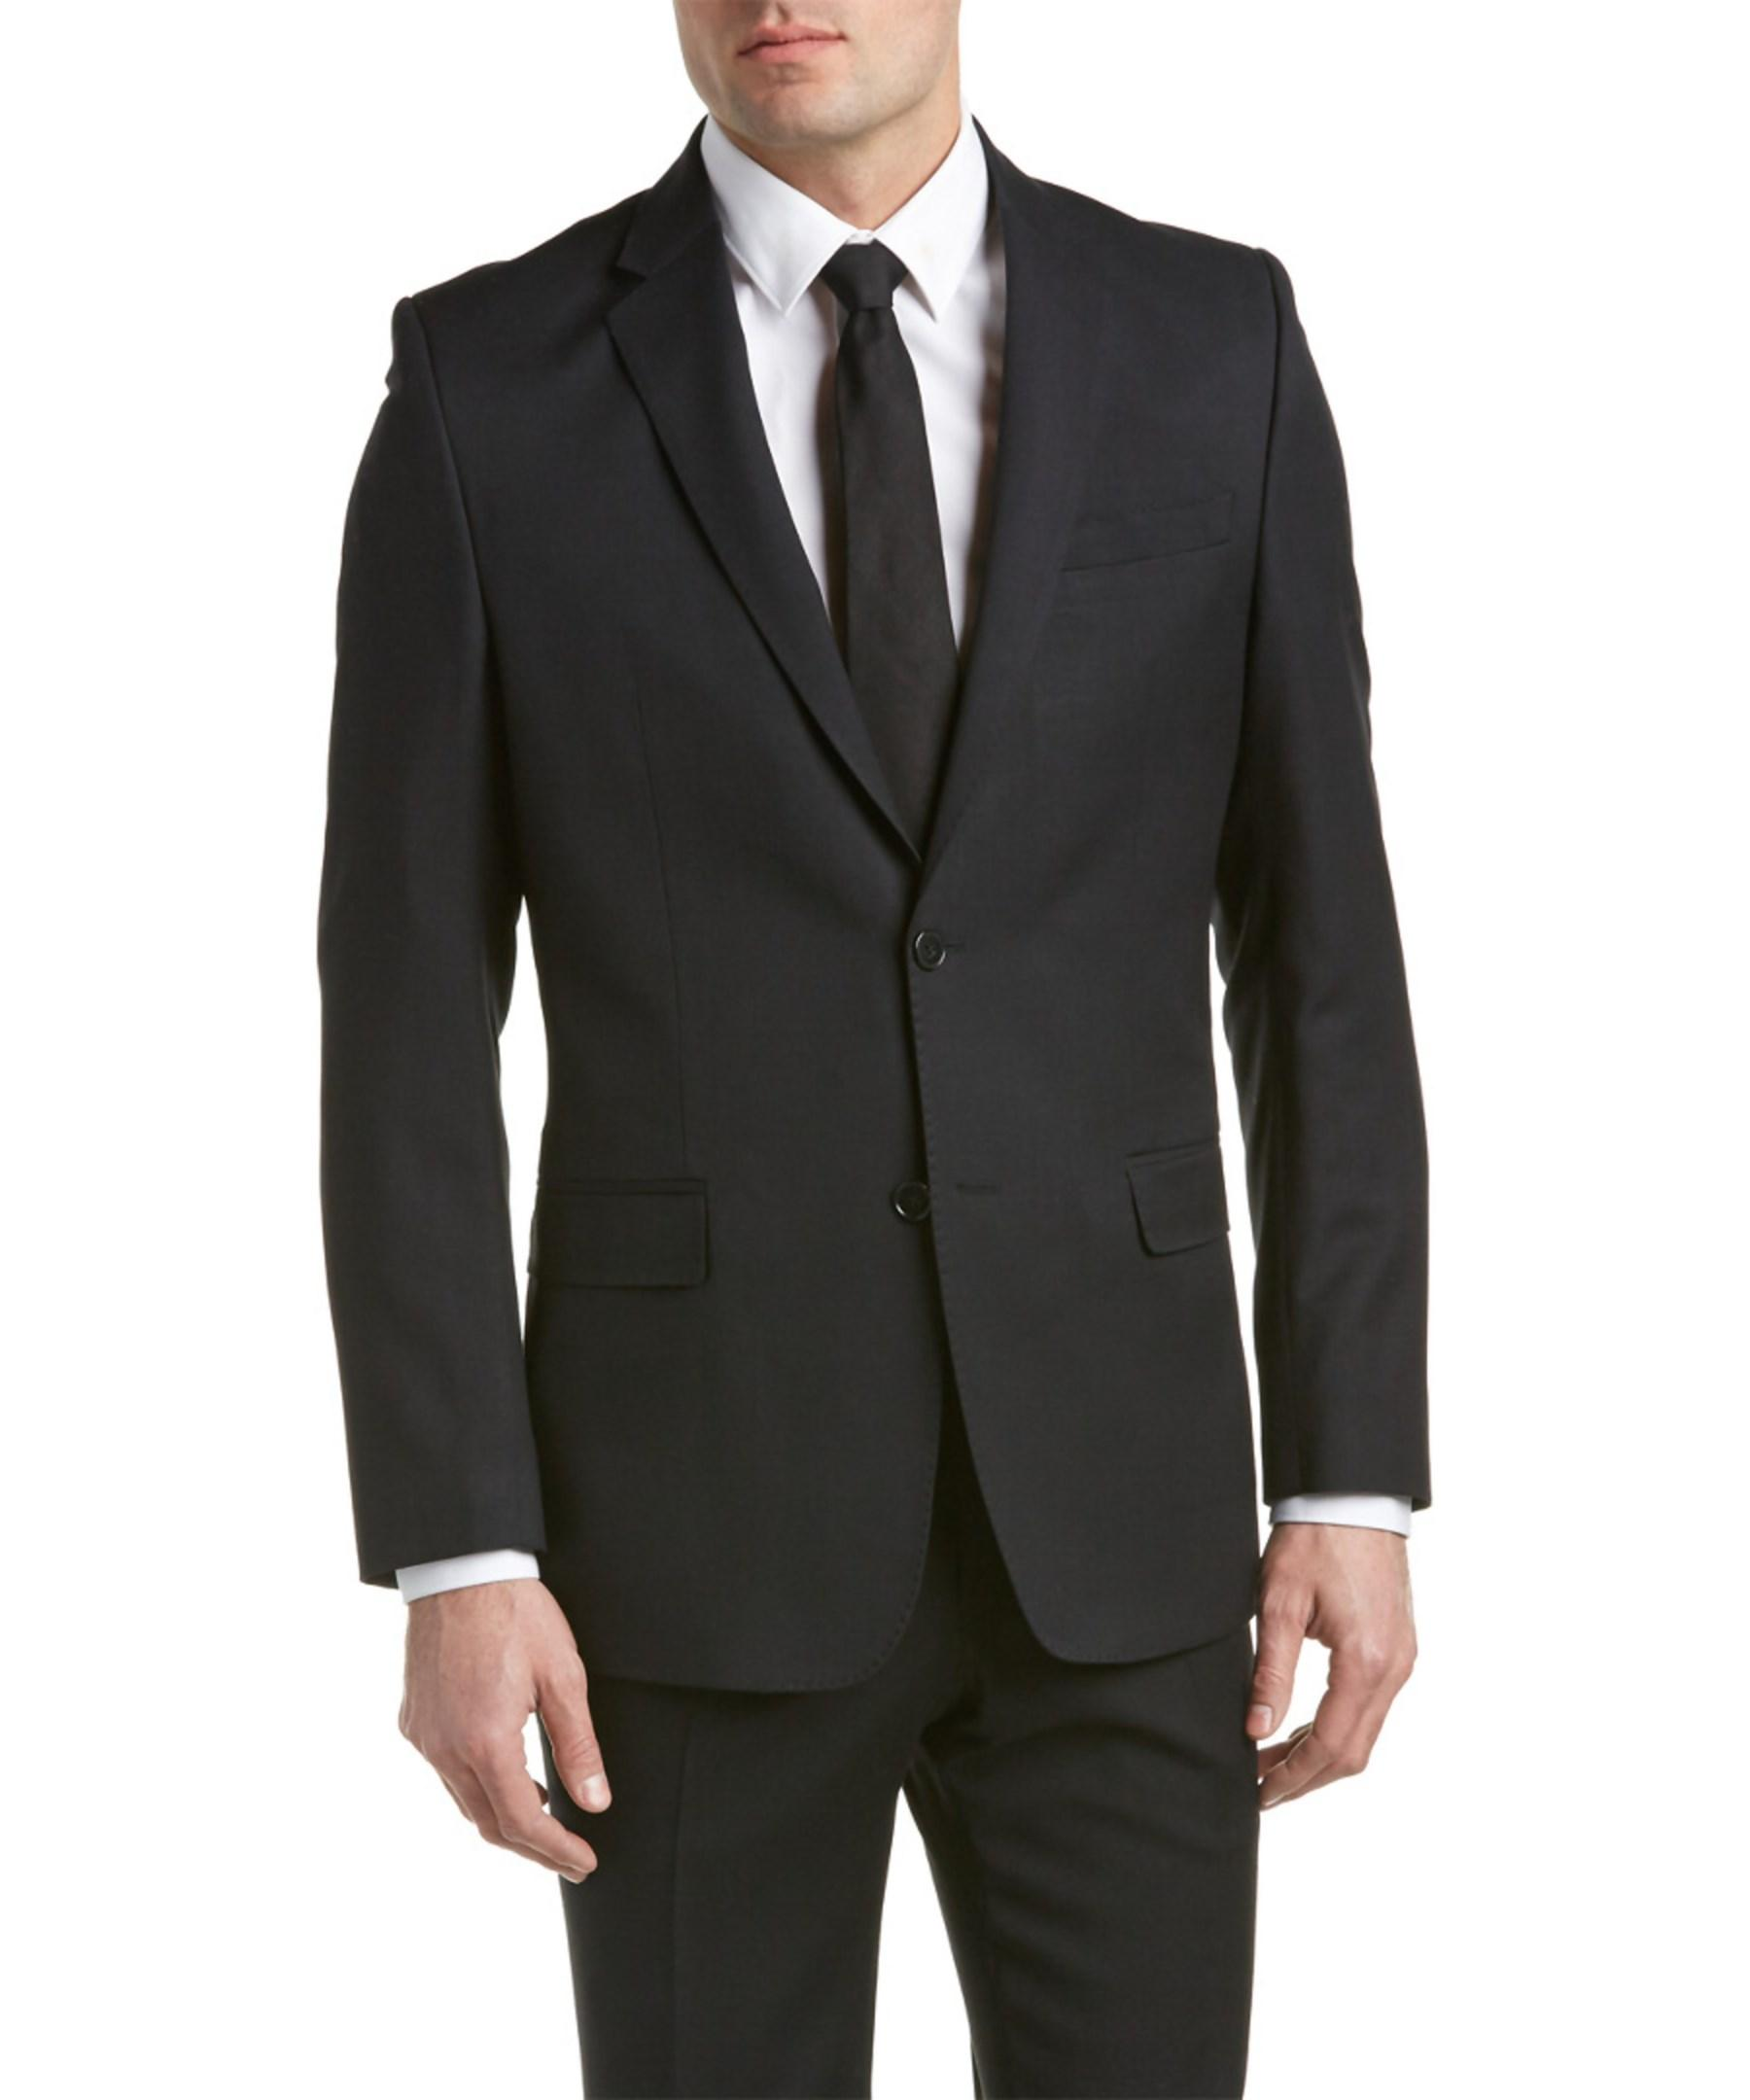 Men, Apparel, Suits at dirtyinstalzonevx6.ga, offering the modern energy, style and personalized service of Saks Off 5th stores, in an enhanced, easy-to-navigate shopping experience.